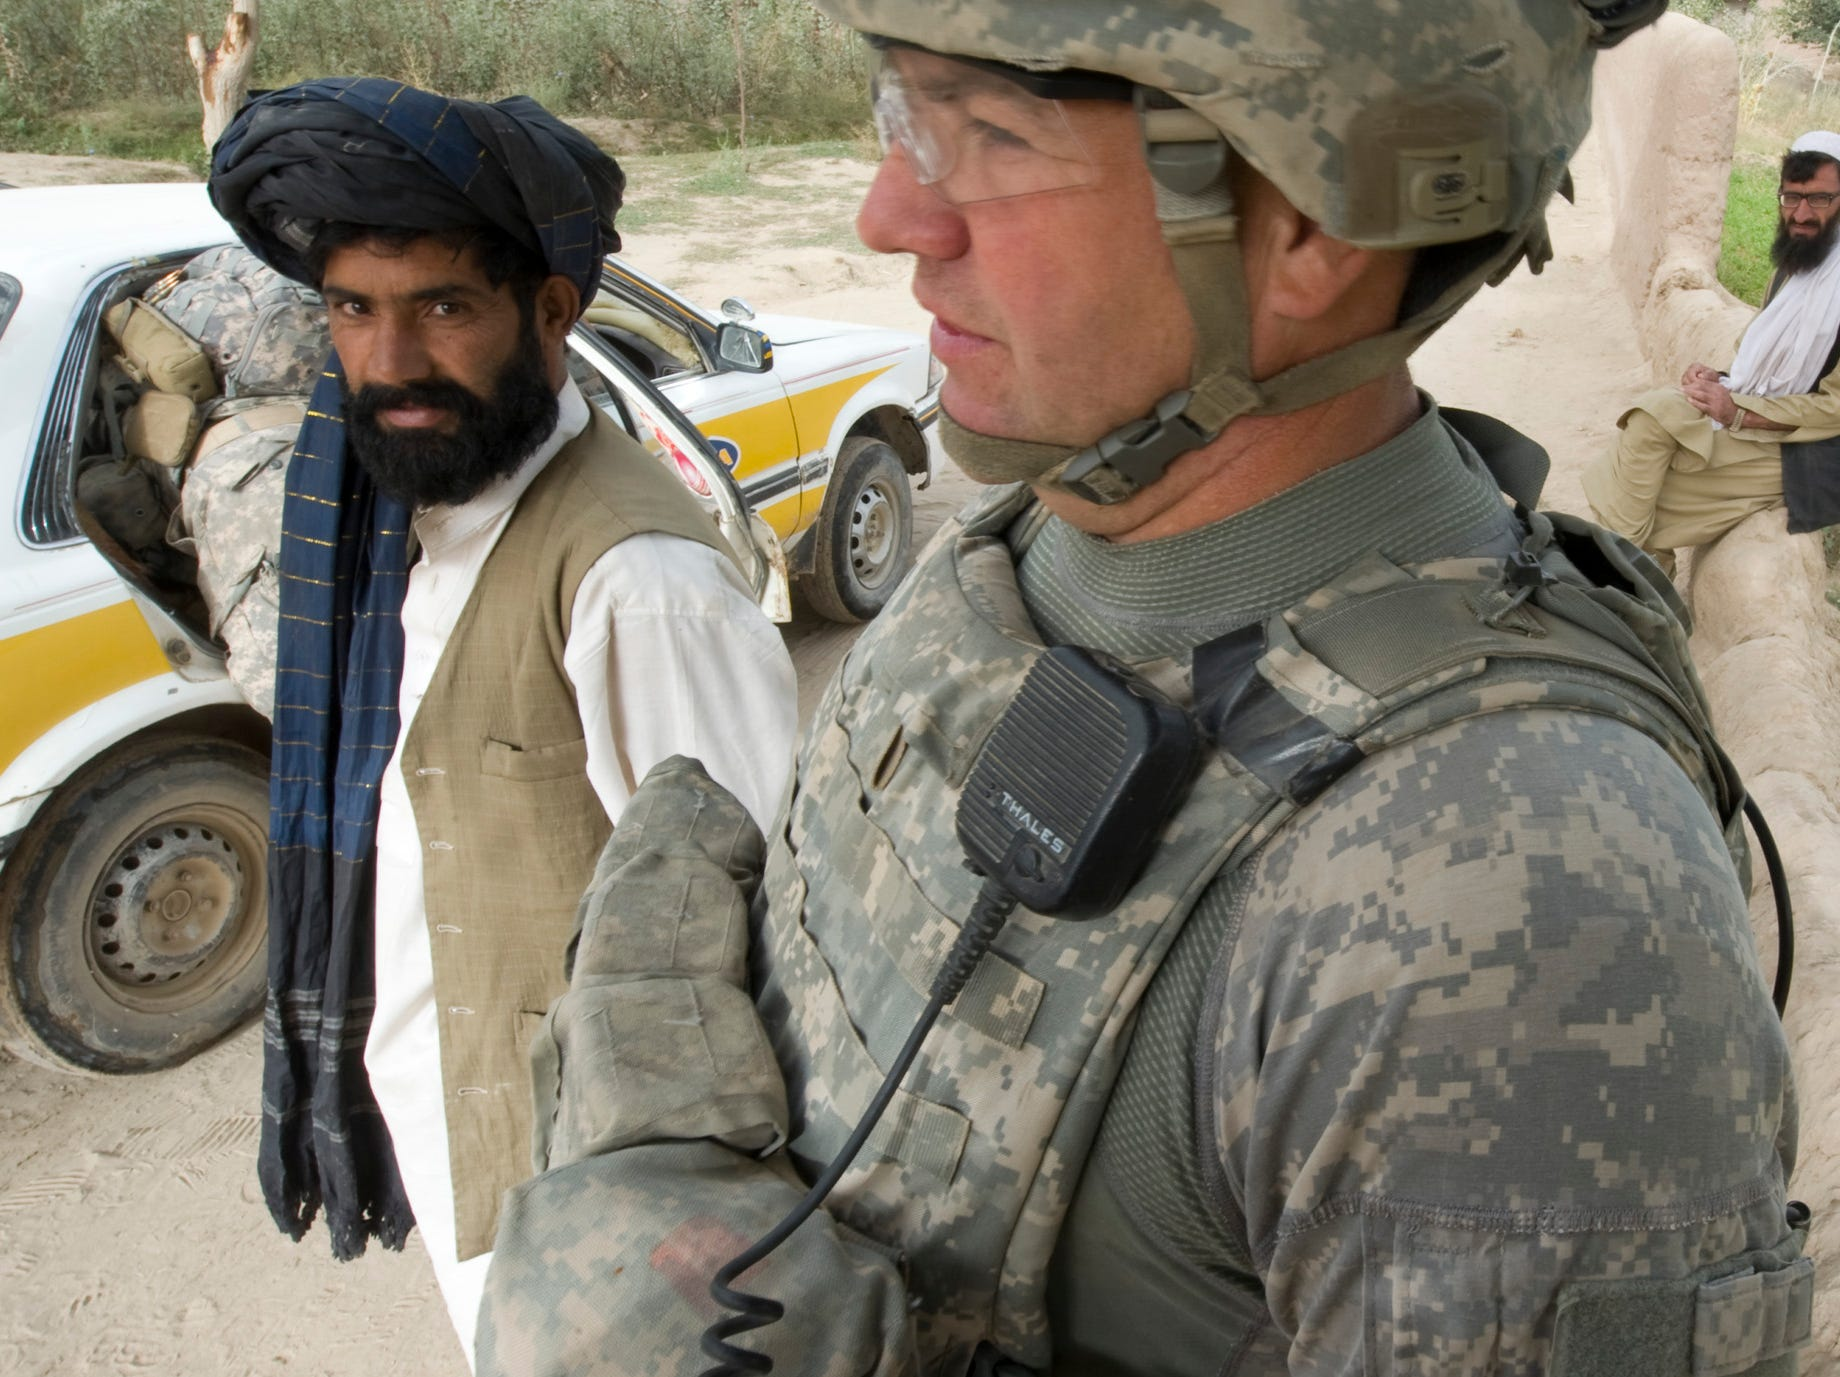 Vermont National Guard Sgt. 1st Class Mark Dailey of Rutland, Vt. oversees a security checkpoint during a patrol by the 3rd Platoon of Delta Company in a village in Rahman Keyhl in southern Paktia Province on Wednesday, September 15, 2010. Stationed in a new Afghan Combat Outpost nearby, the area hasn't seen a consistent U.S. military presence until now.